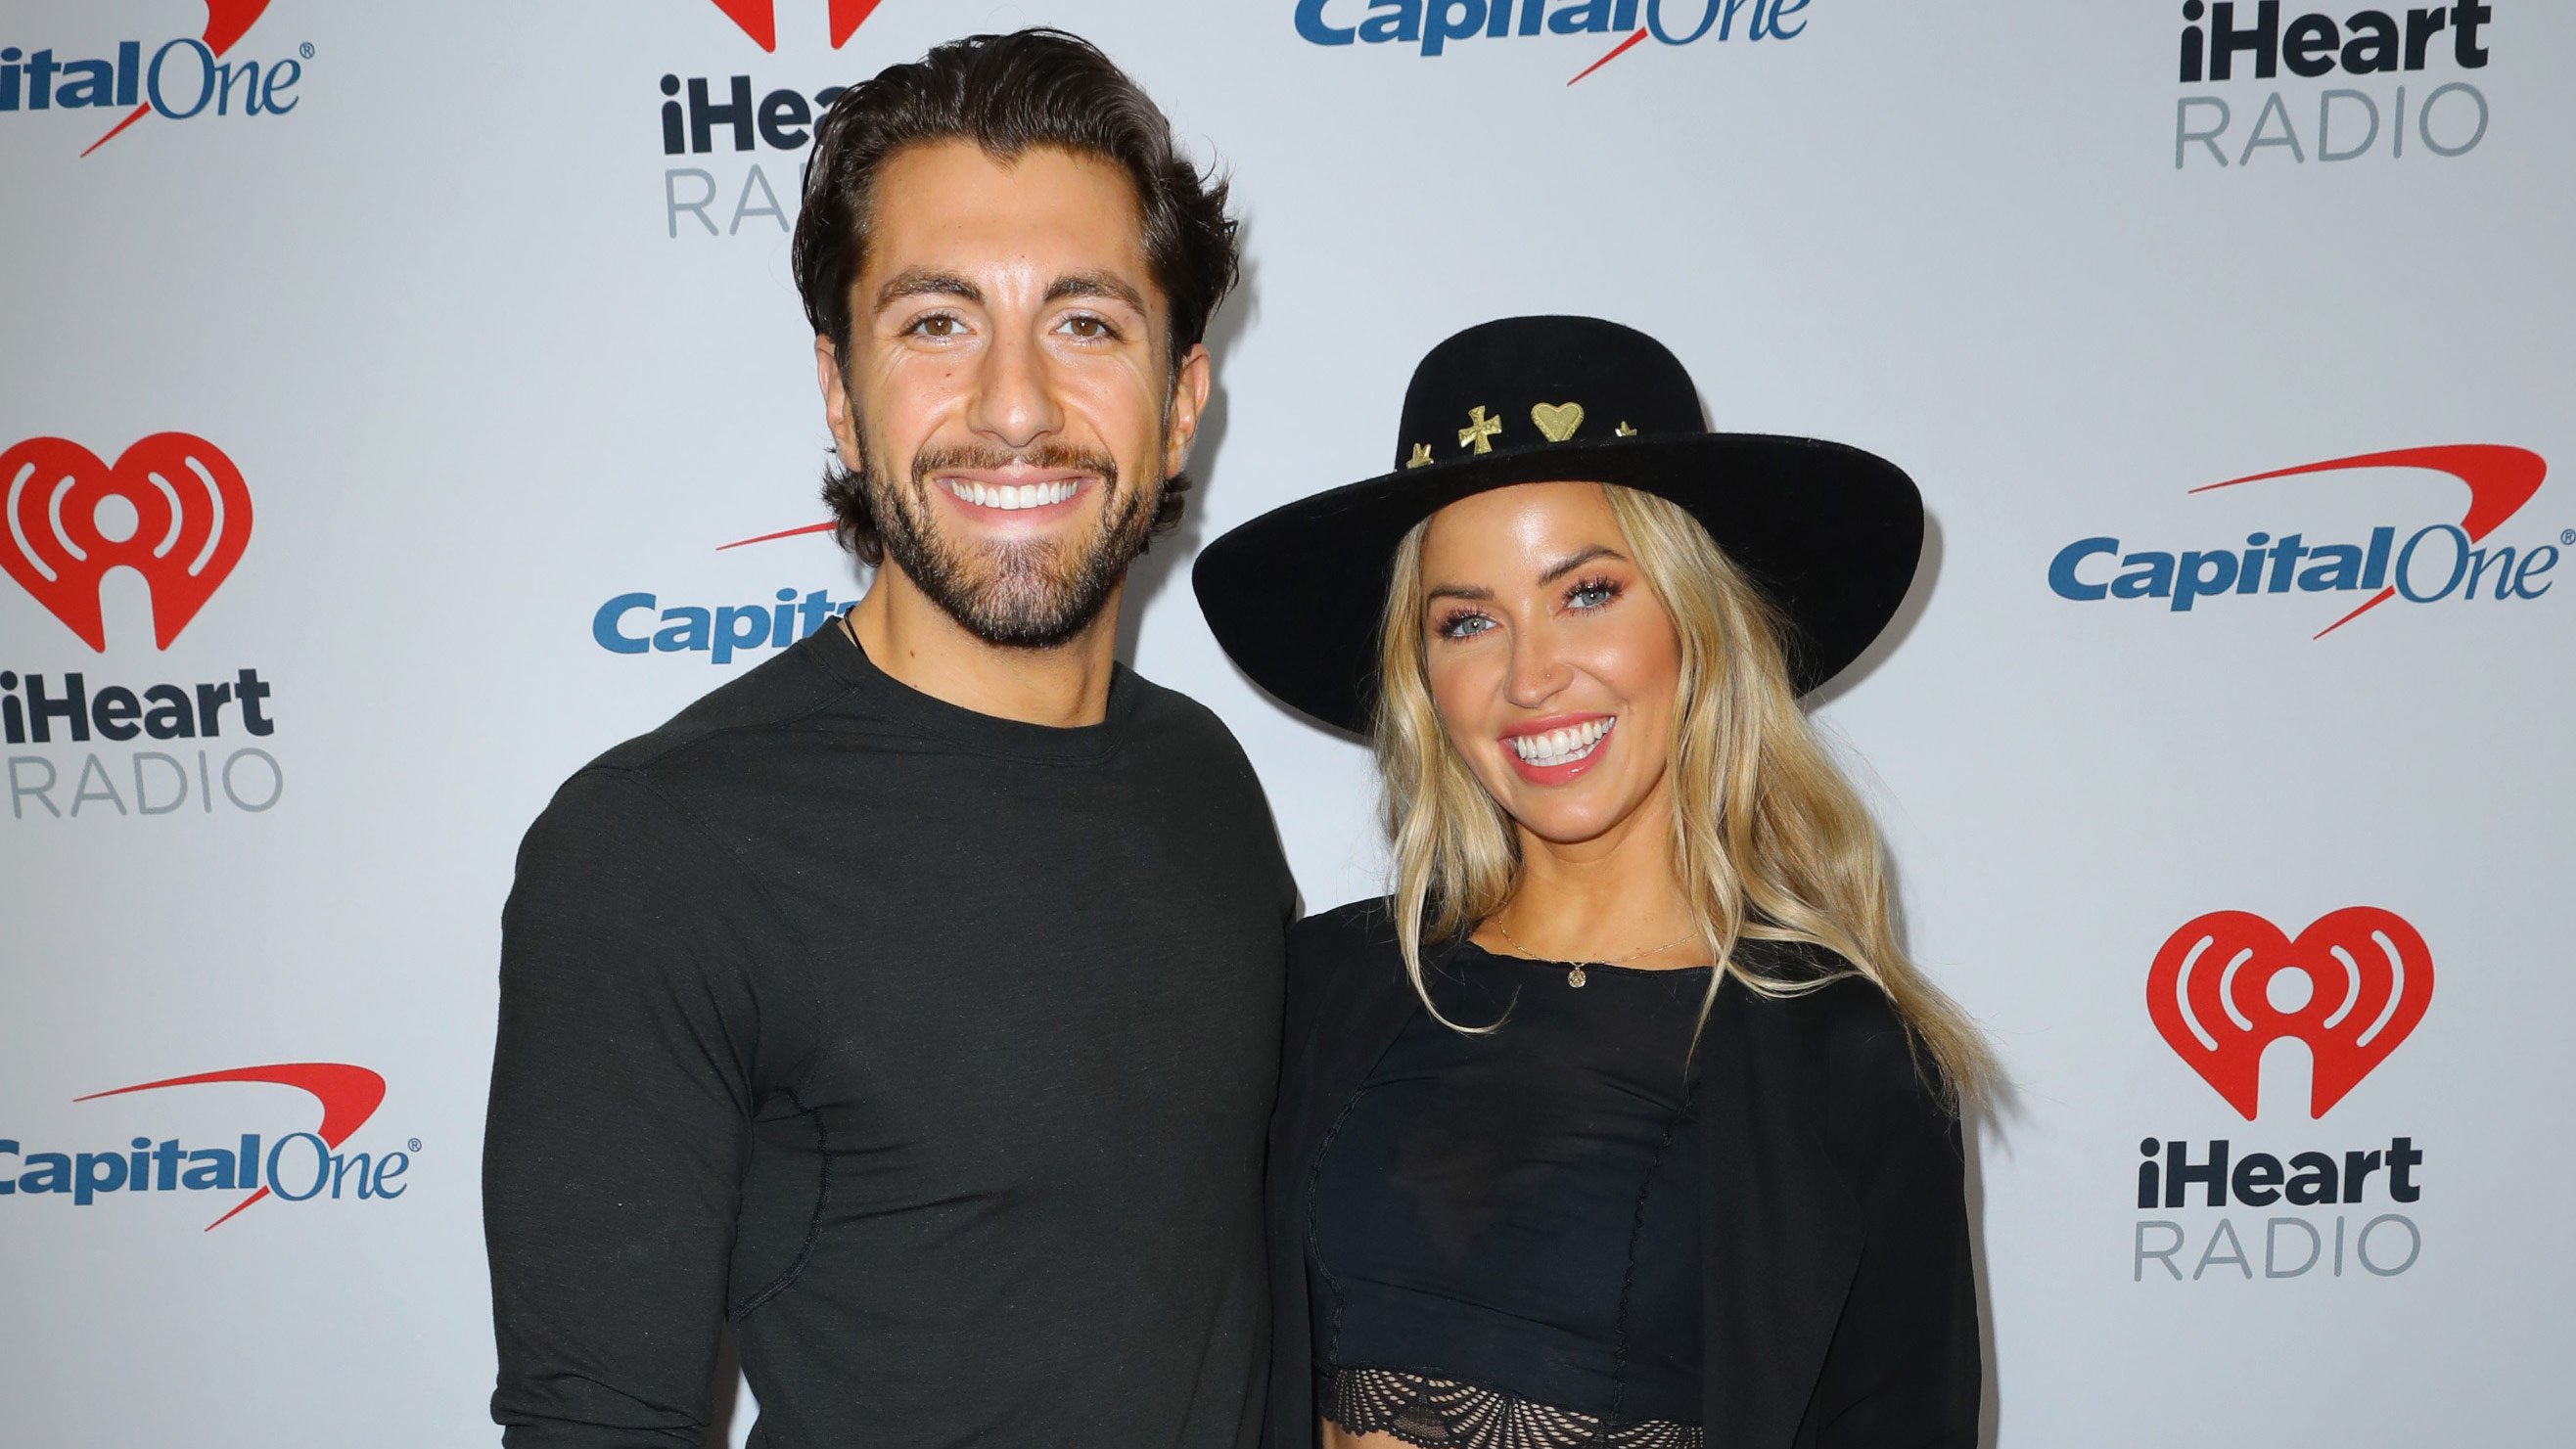 'Bachelorette's' Kaitlyn Bristowe engaged to Jason Tartick